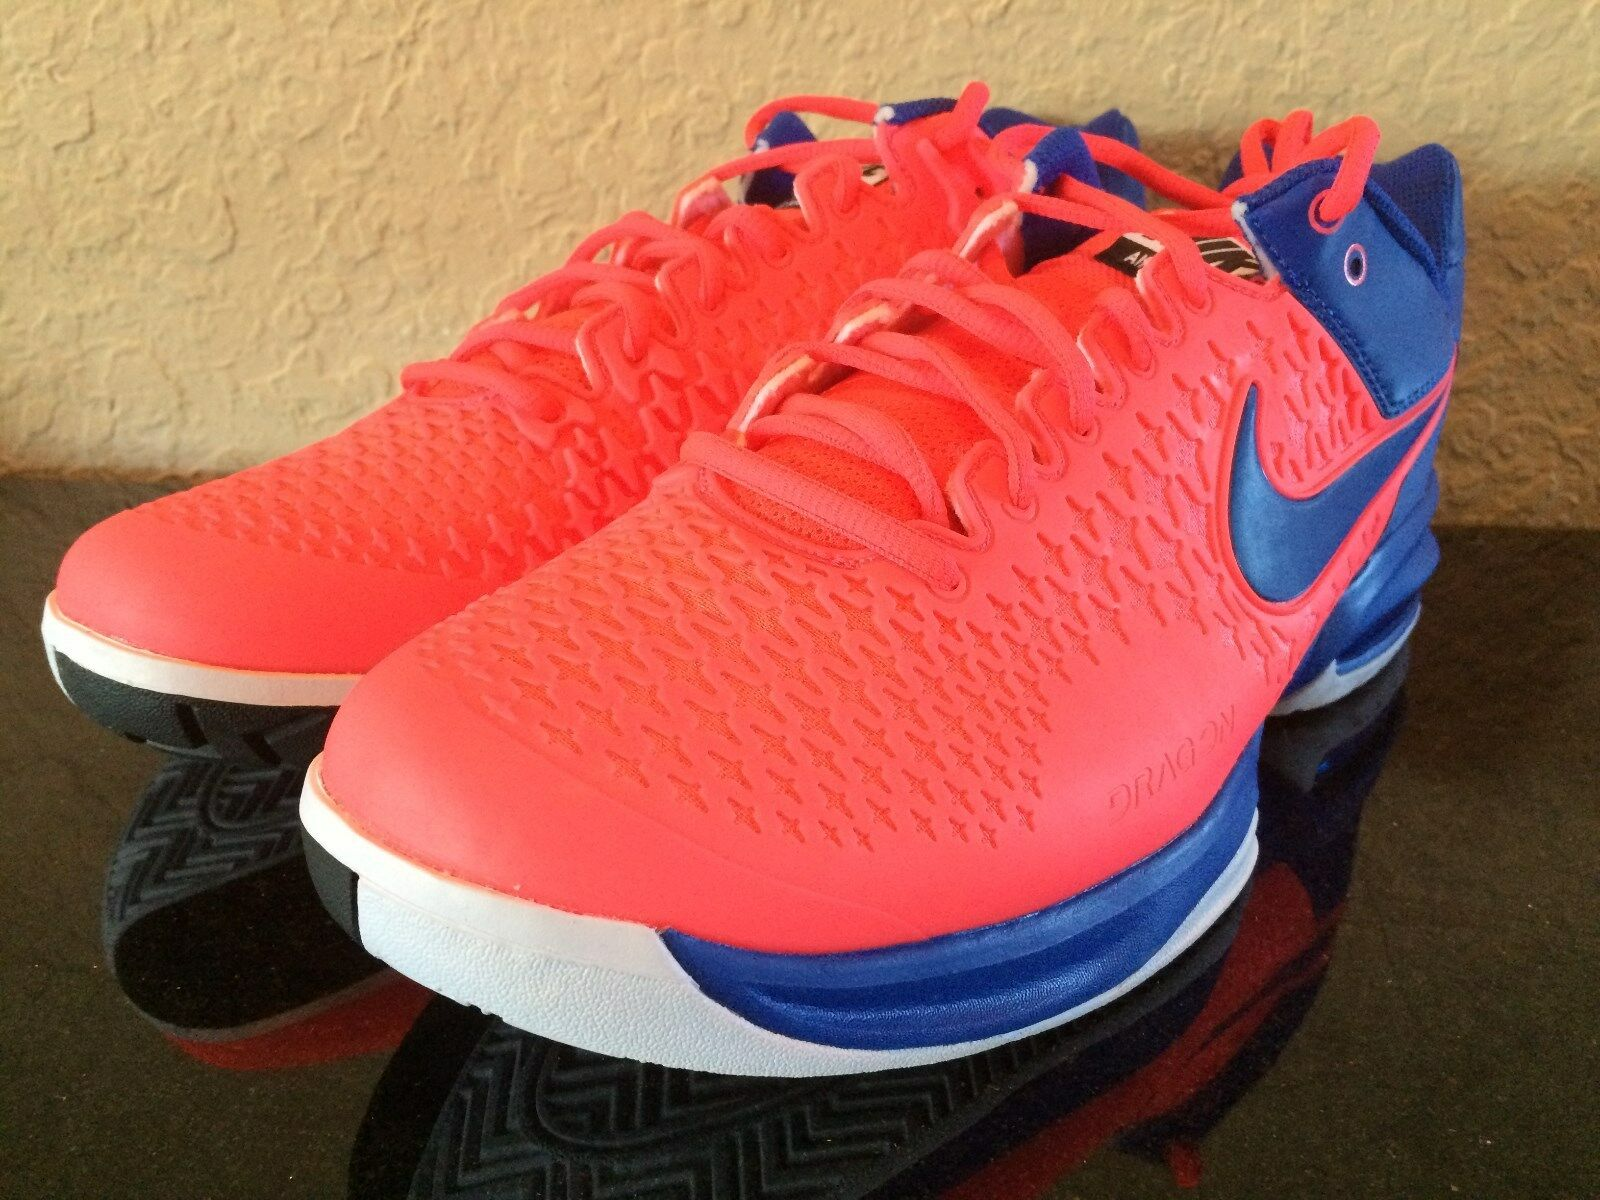 Nike Men's Air Max CageTennis Shoes Red Lava-Blue NY 2014 Cheap women's shoes women's shoes